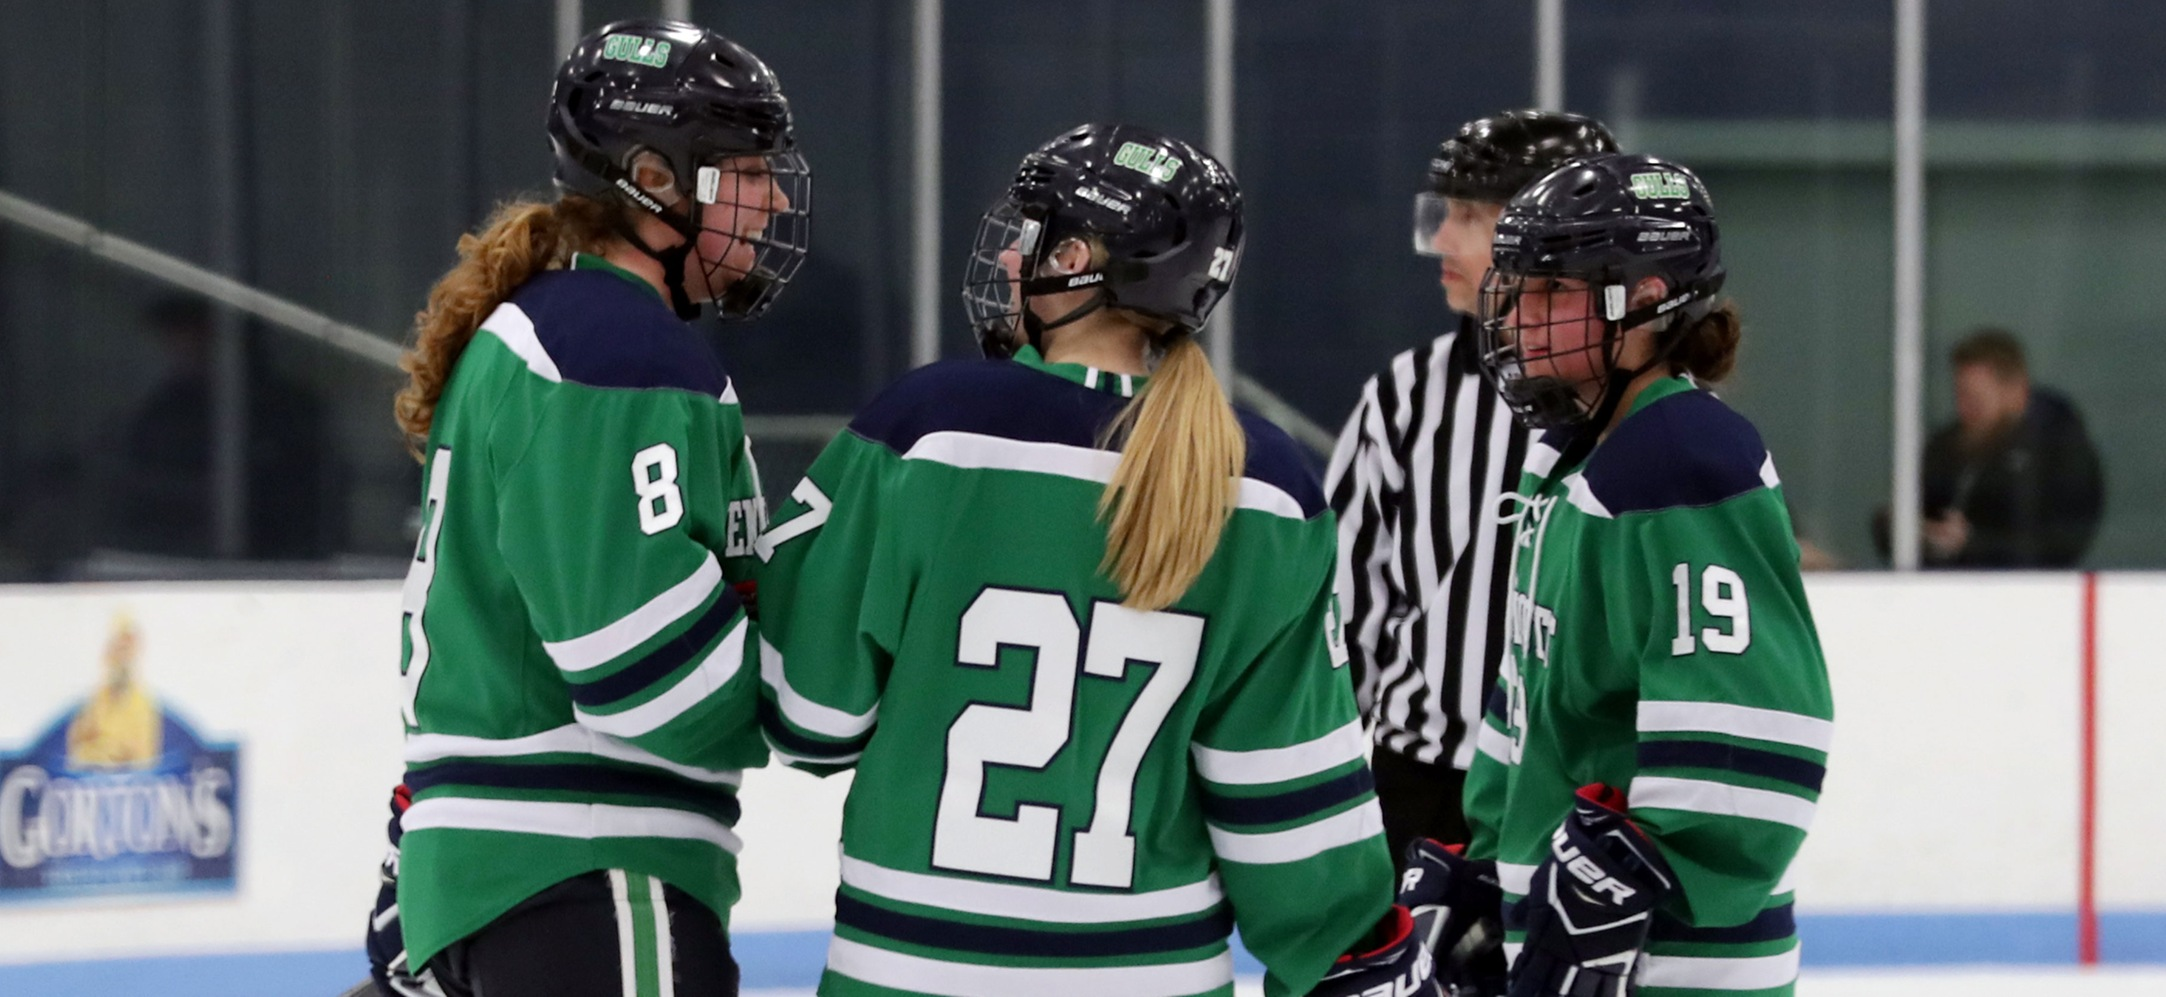 Ellen Carter, Nicole Demers, and Jade Meier talk during a stop in play.